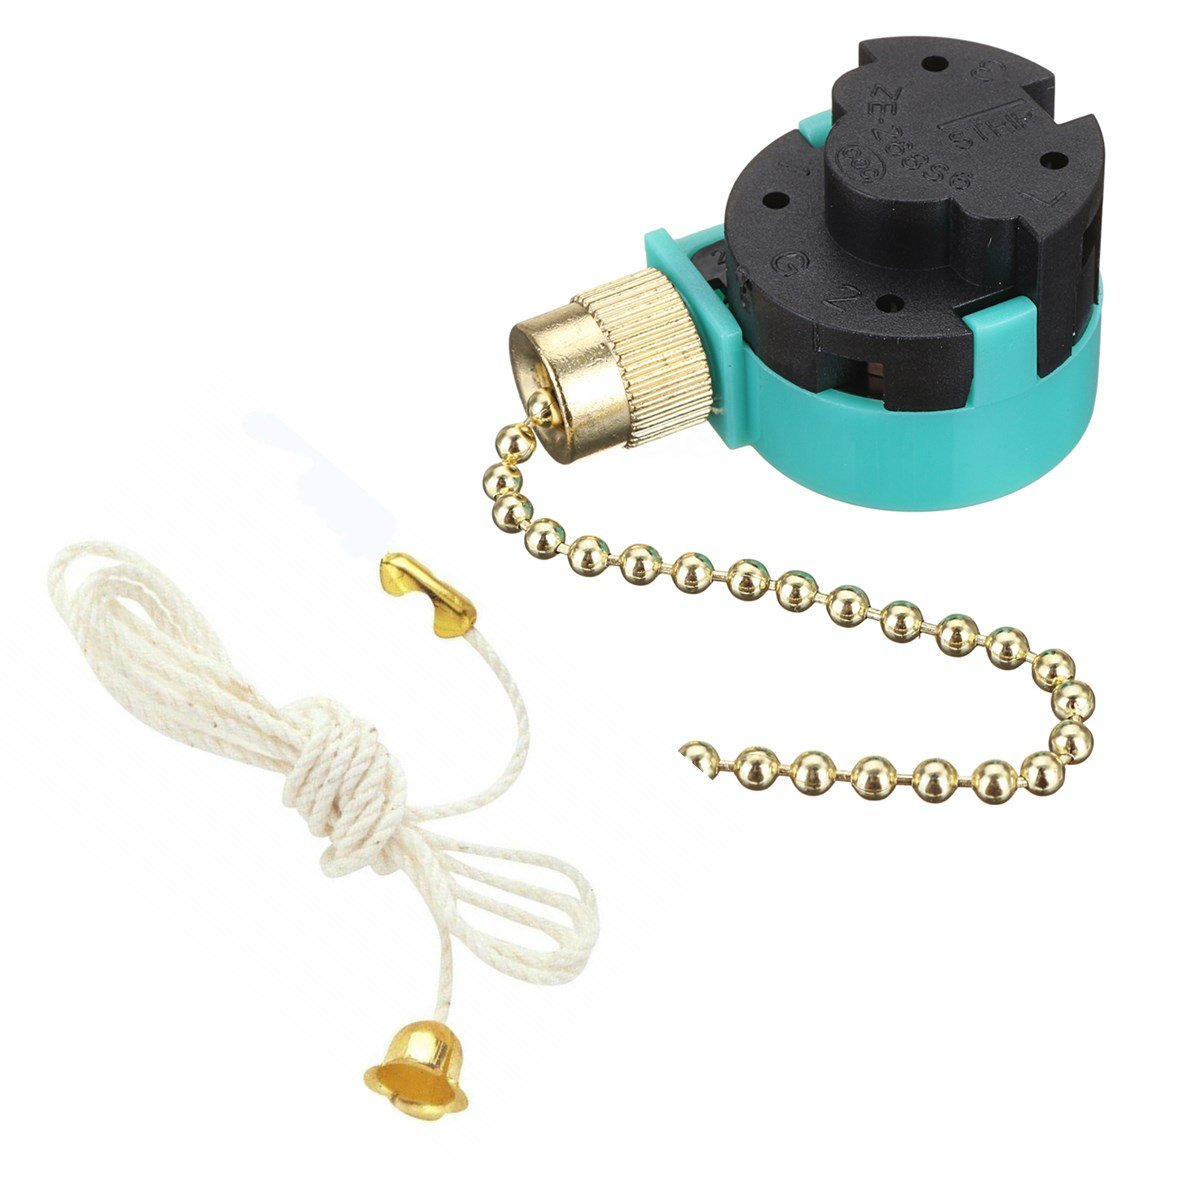 Ceiling Fan Switch E-268S6 with Rope, Wall light Rotary Pull Chain cord Switch 3 Speed Pull Chain Control Replacement Speed Control 4 Wire Switch for Ceiling Fans, Lamps by Aoprofree (Brass)